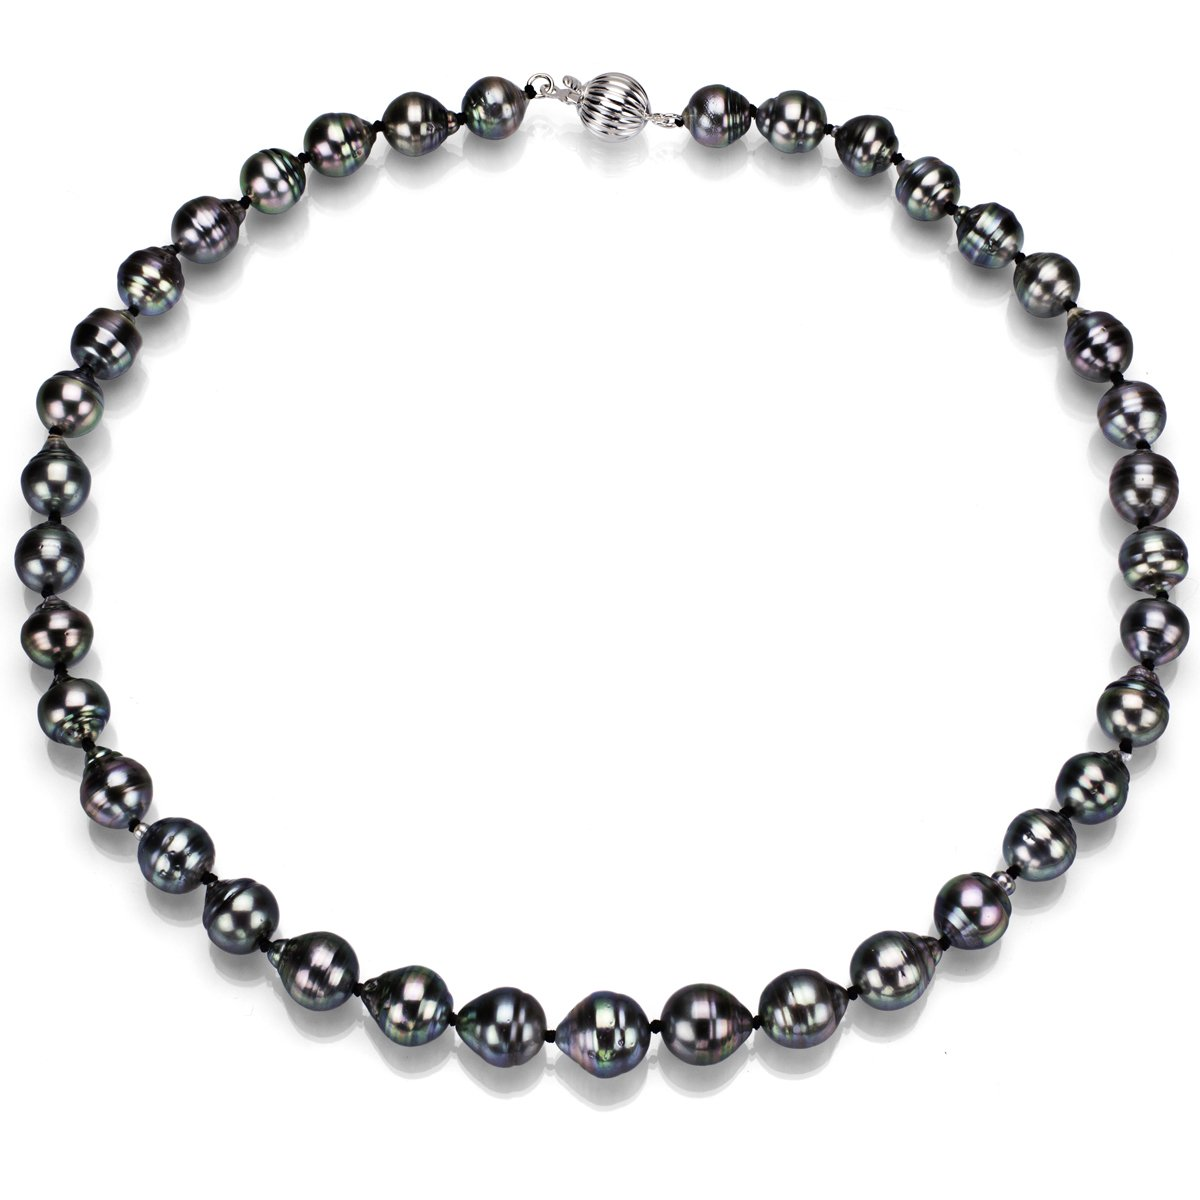 Sterling Silver Black Baroque South Sea Cultured Tahitian Pearl Necklace for Women 18 inch